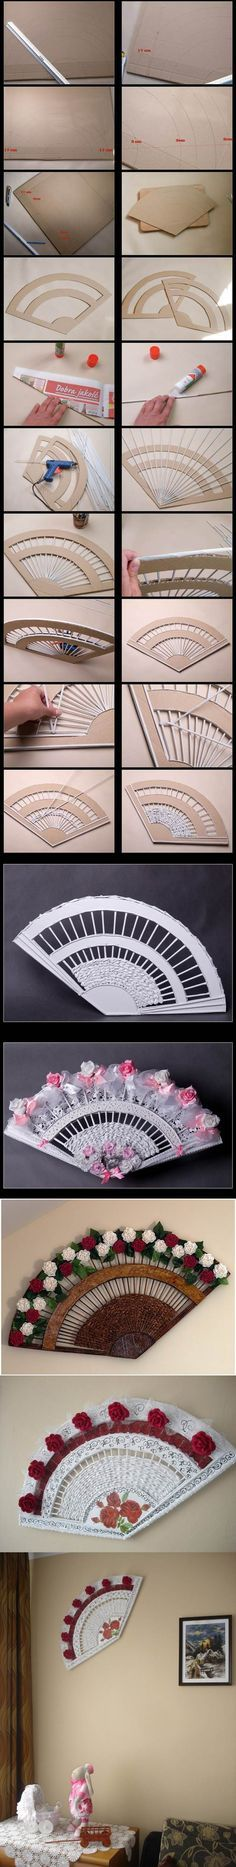 DIY Decorative Fan from Old Newspaper and Cardboard 2 gift packing tray. Diy Projects To Try, Crafts To Do, Craft Projects, Arts And Crafts, Craft Ideas, Decor Ideas, Newspaper Crafts, Old Newspaper, Origami